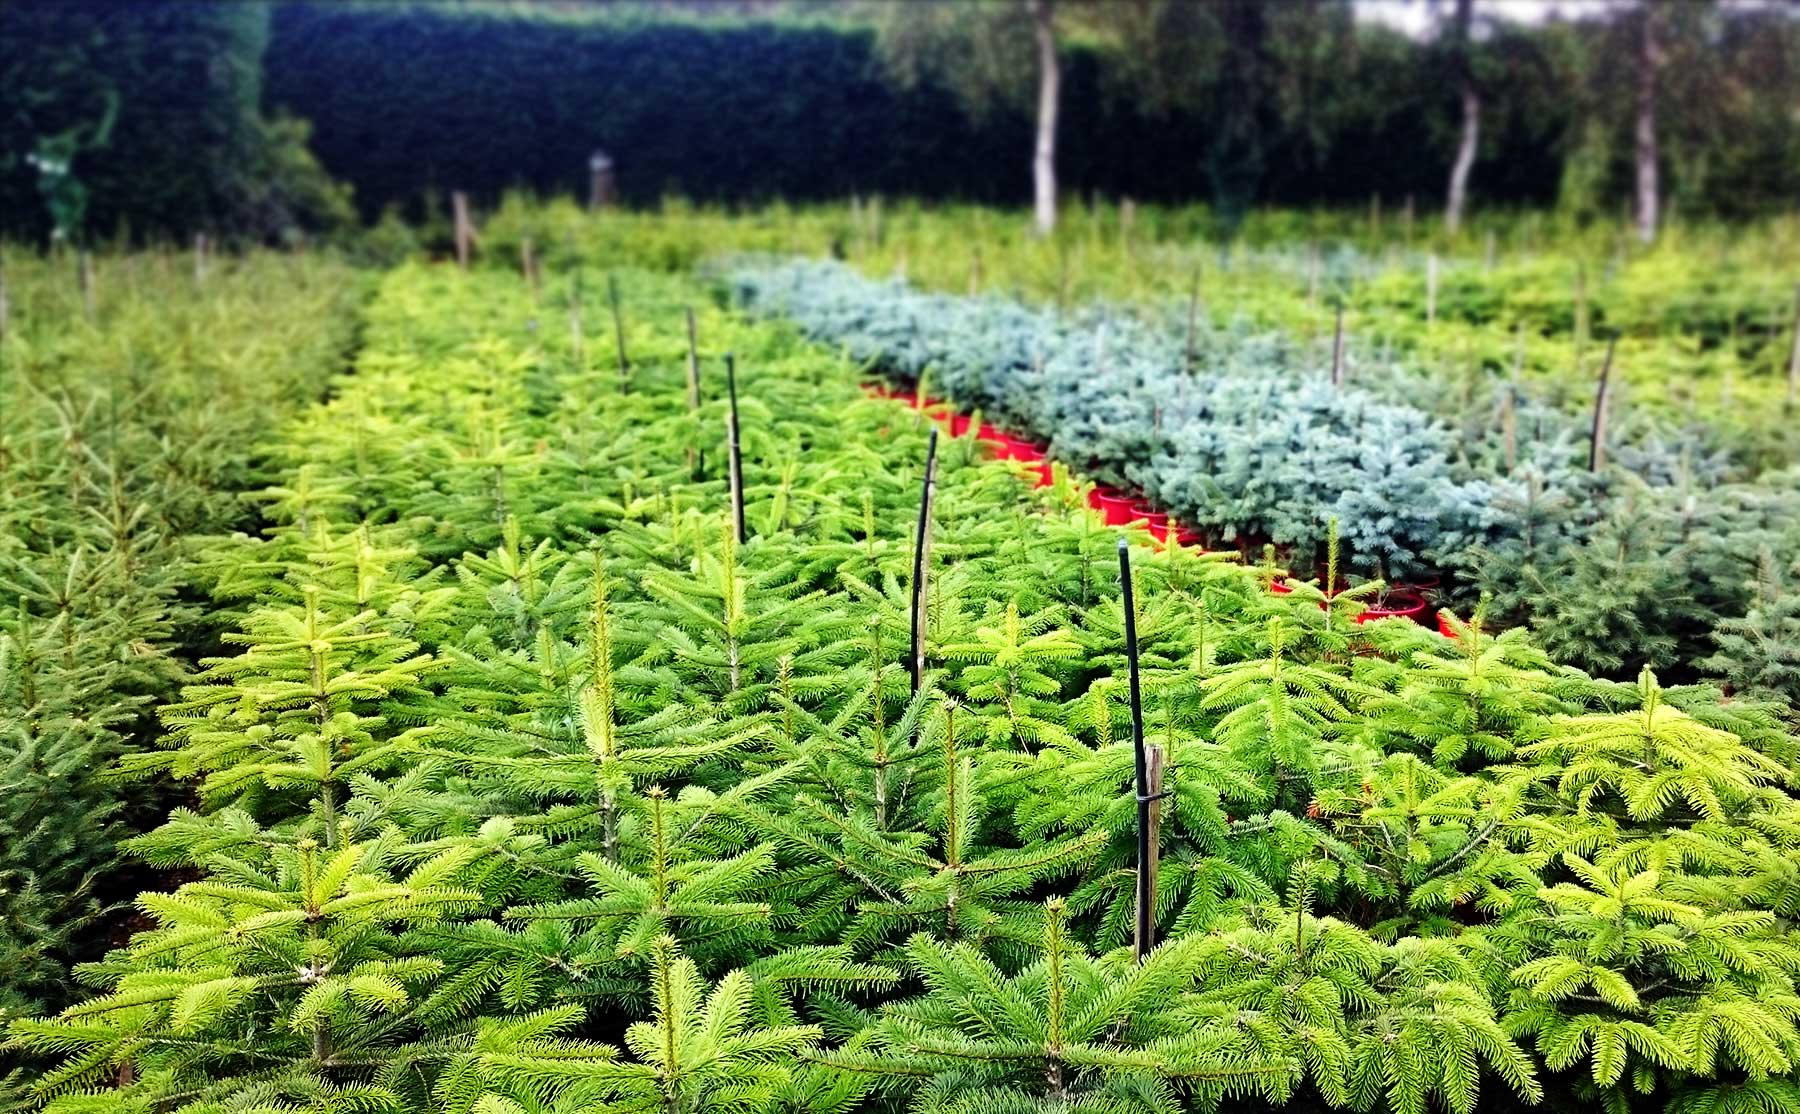 with thousands of high quality real christmas trees to choose from youre sure to find your perfect tree at newlands nursery - Christmas Tree Nursery